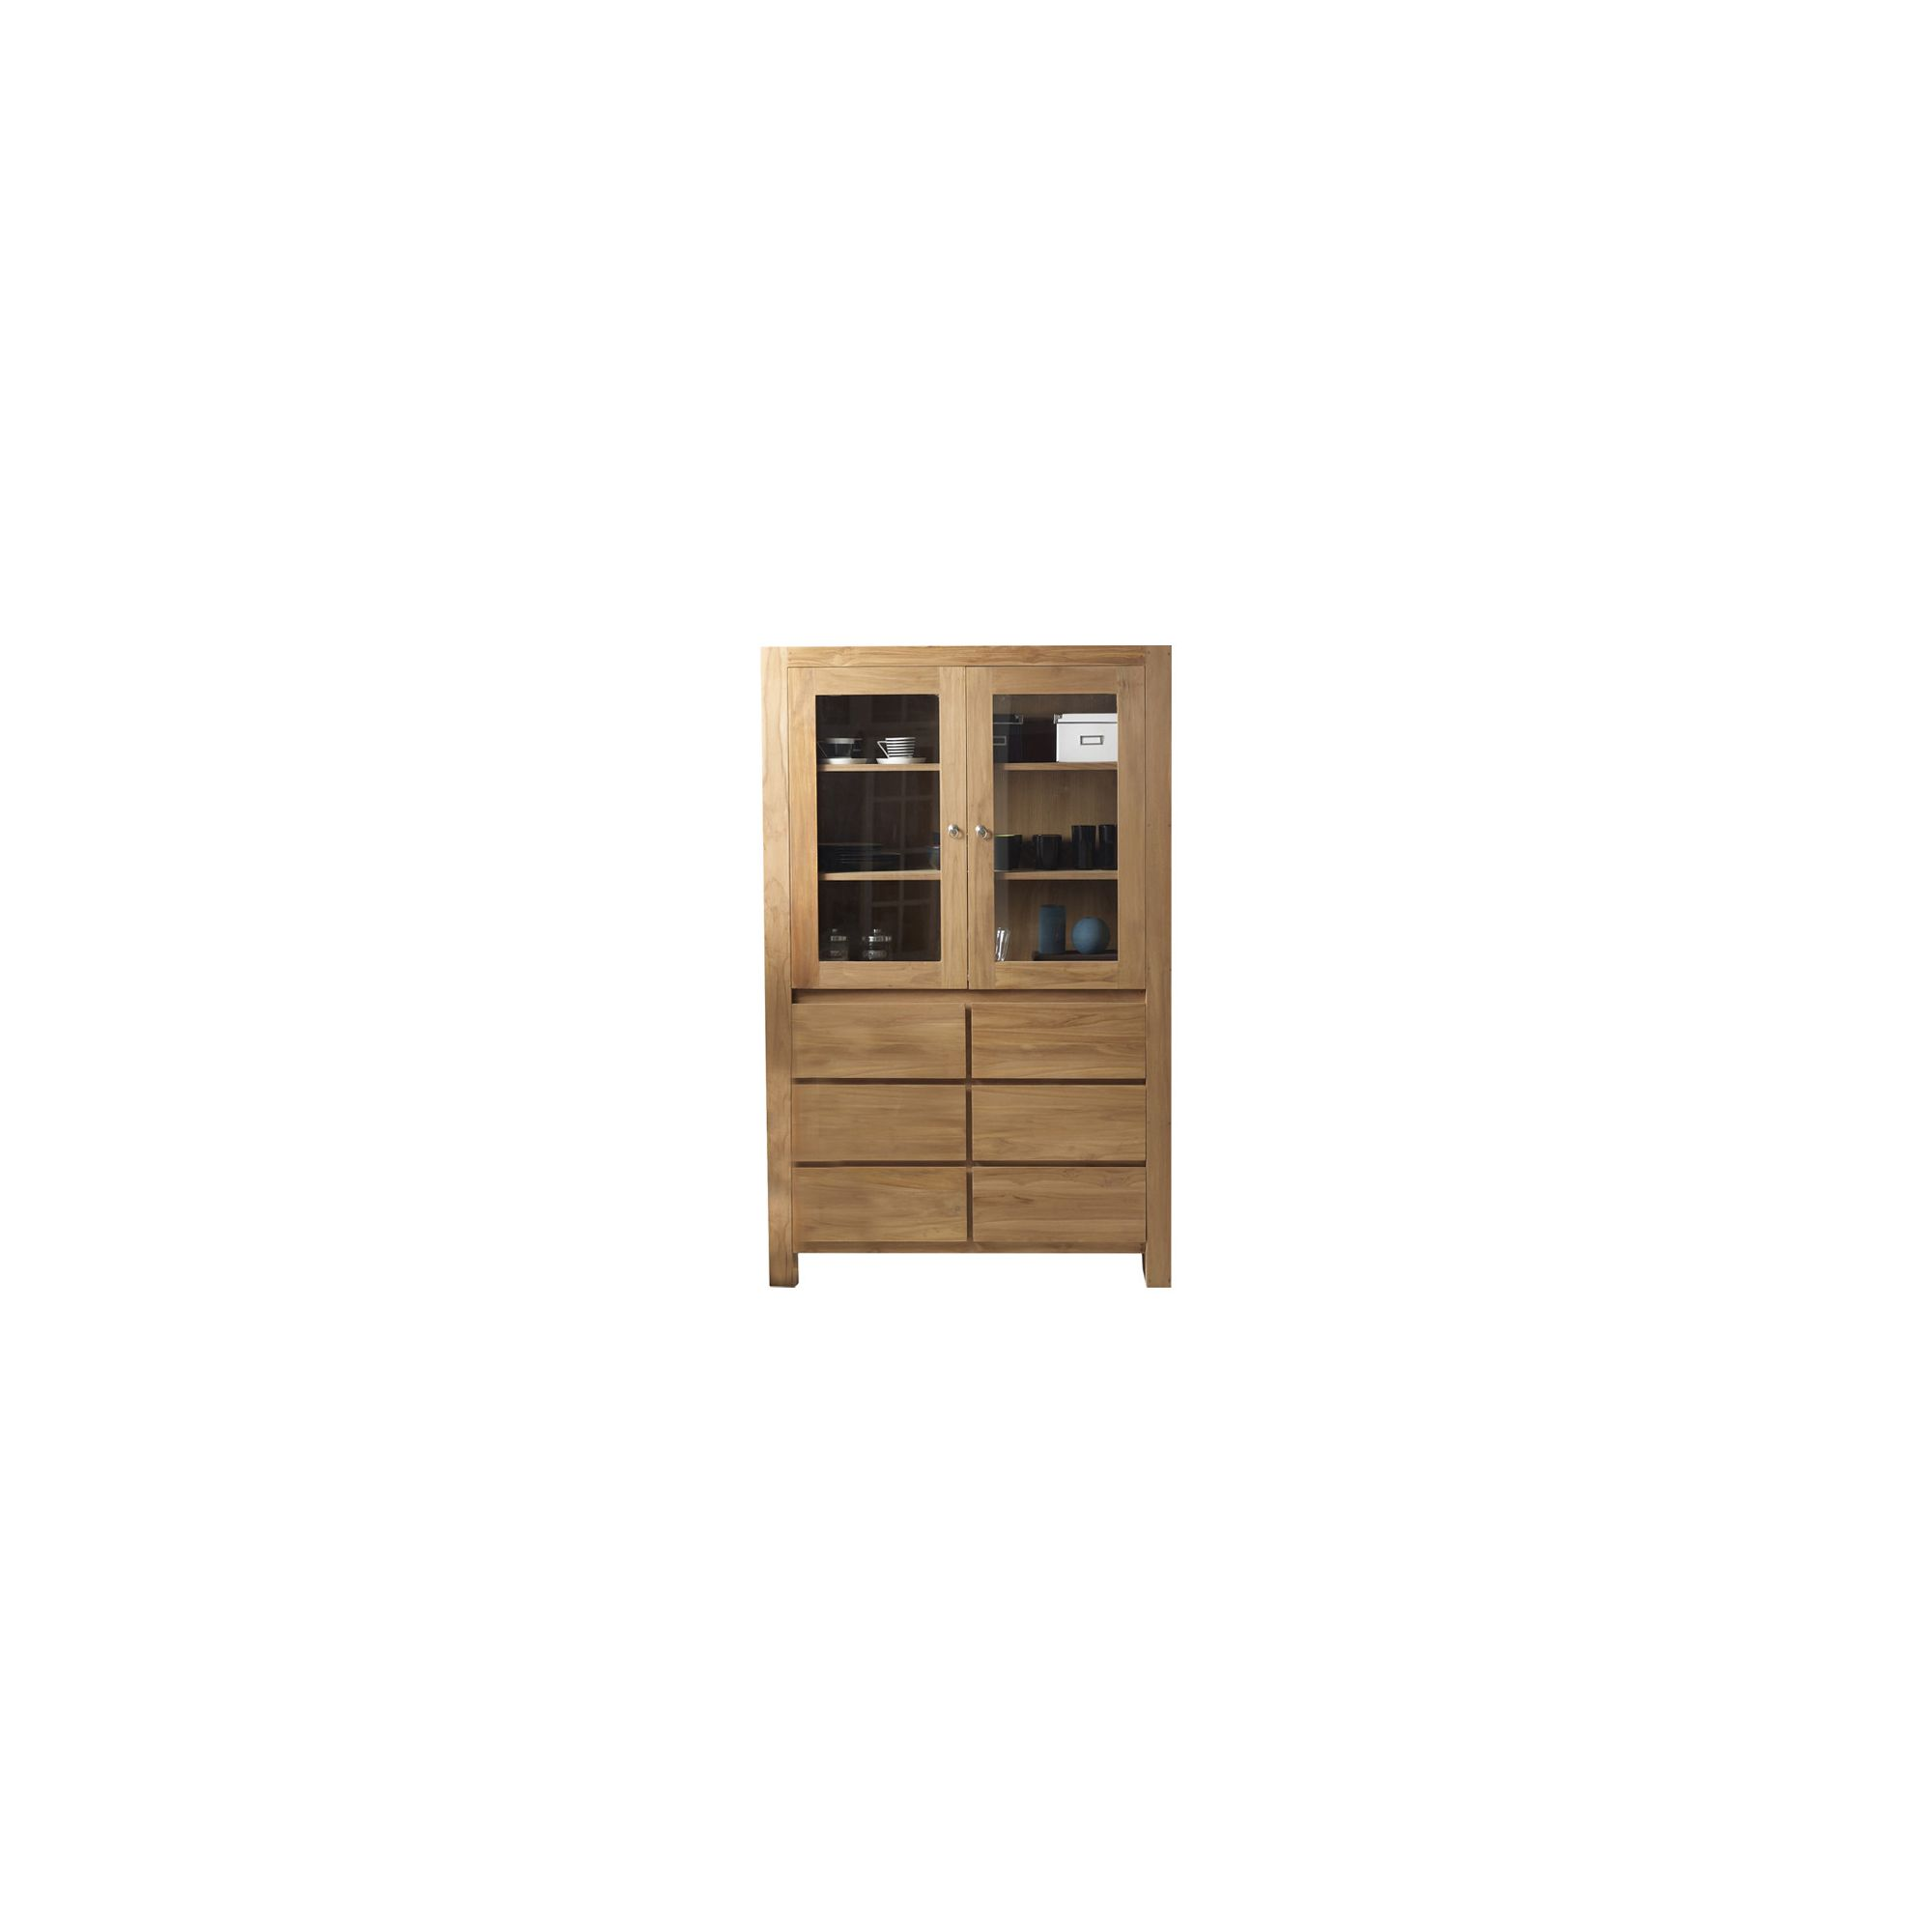 Tikamoon Eden Teak Display Cabinet at Tesco Direct